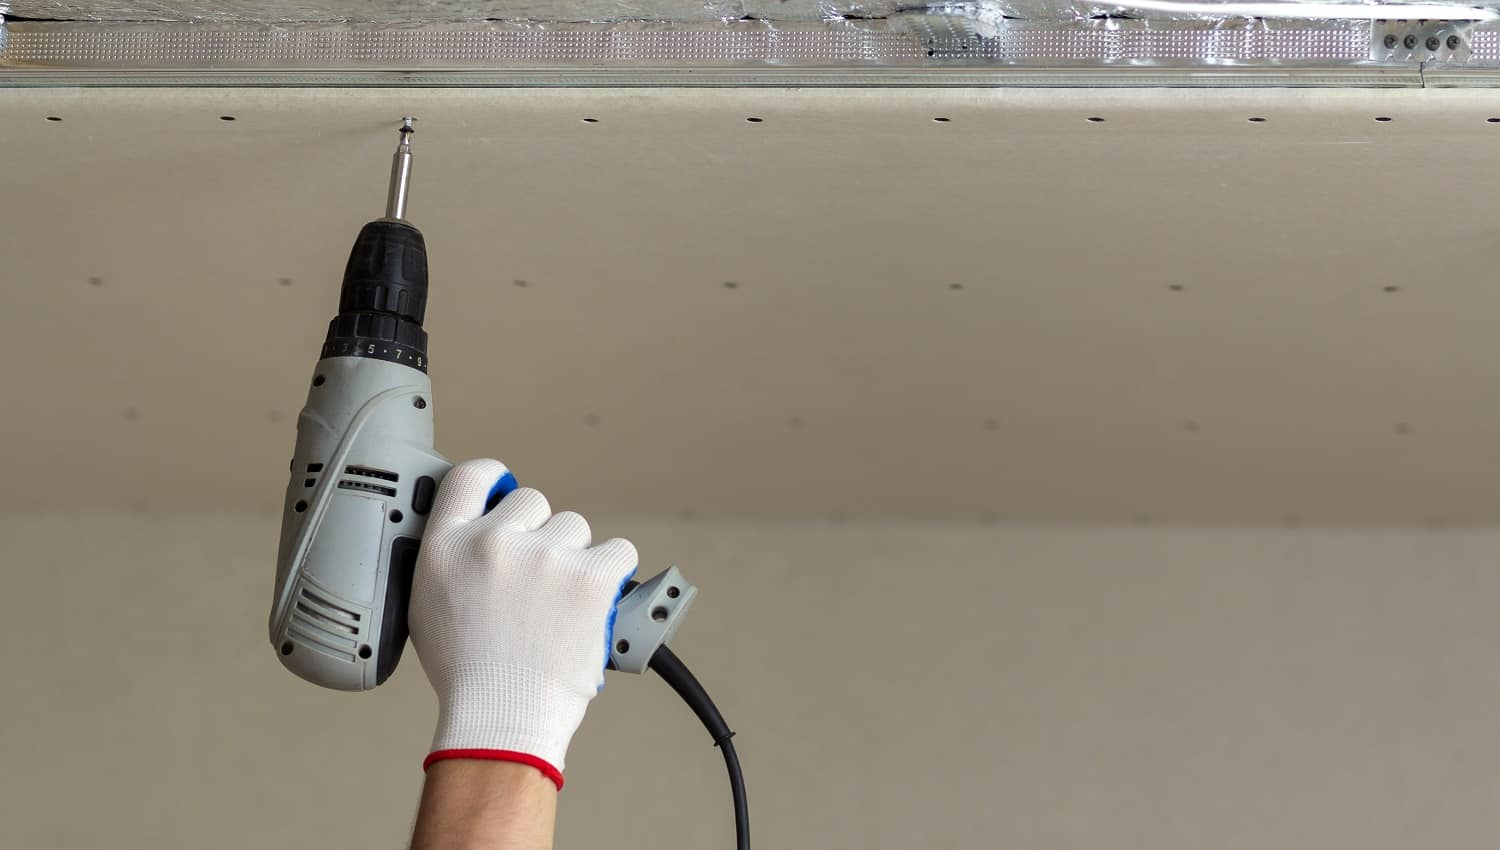 Close-up of constructor worker hand in protective glove with electrical cordless screwdriver connecting suspended drywall ceiling to metal frame. Renovation, construction and DIY concept.